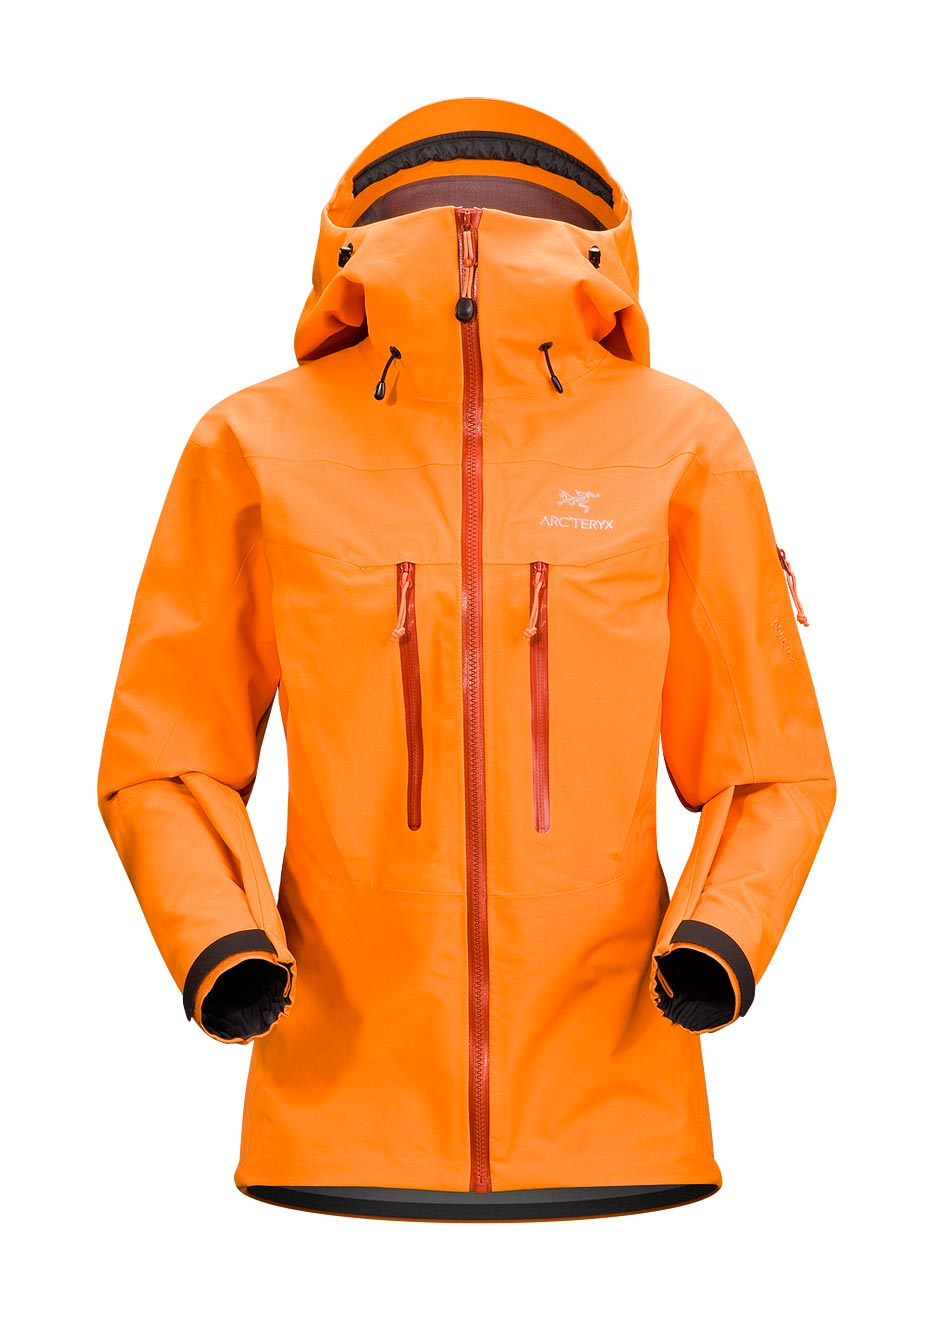 Arcteryx Jackets Women Blaze Alpha SV Jacket